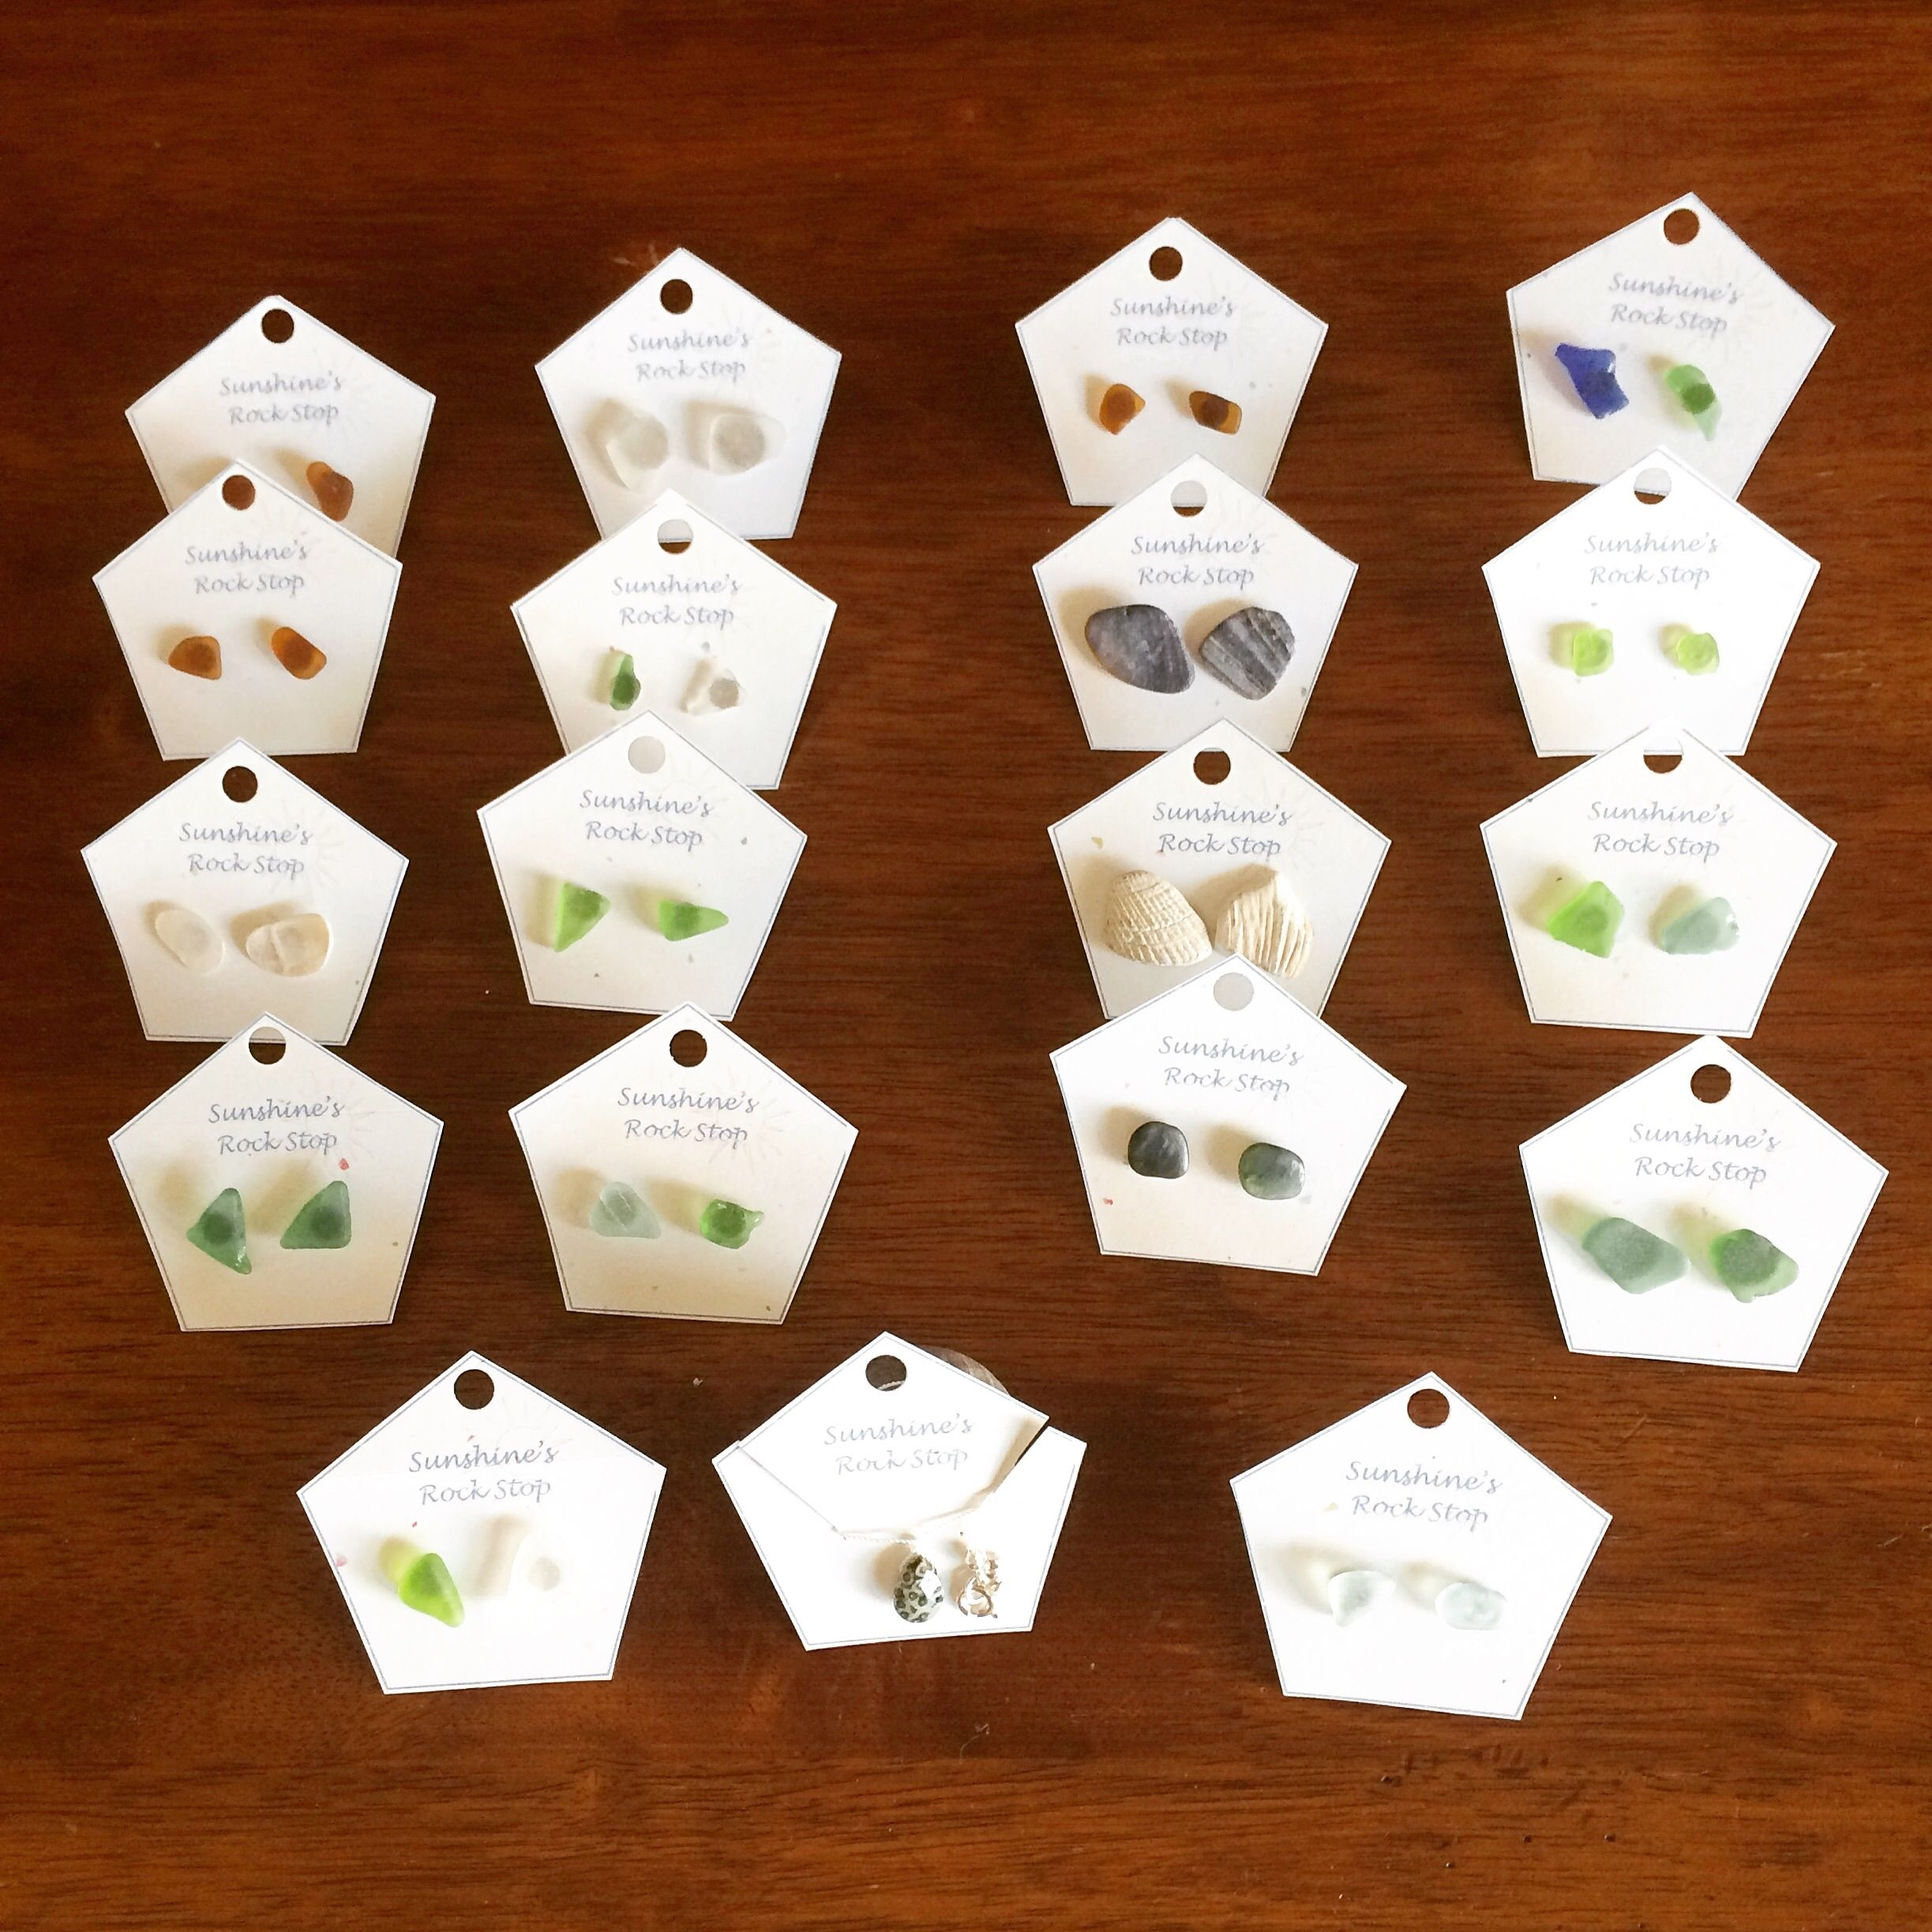 Sea Glass Earrings    20% off everything just type in the discount code SummerTime!     Shop this post and others at http://spreesy.com/sunshinesrockstop